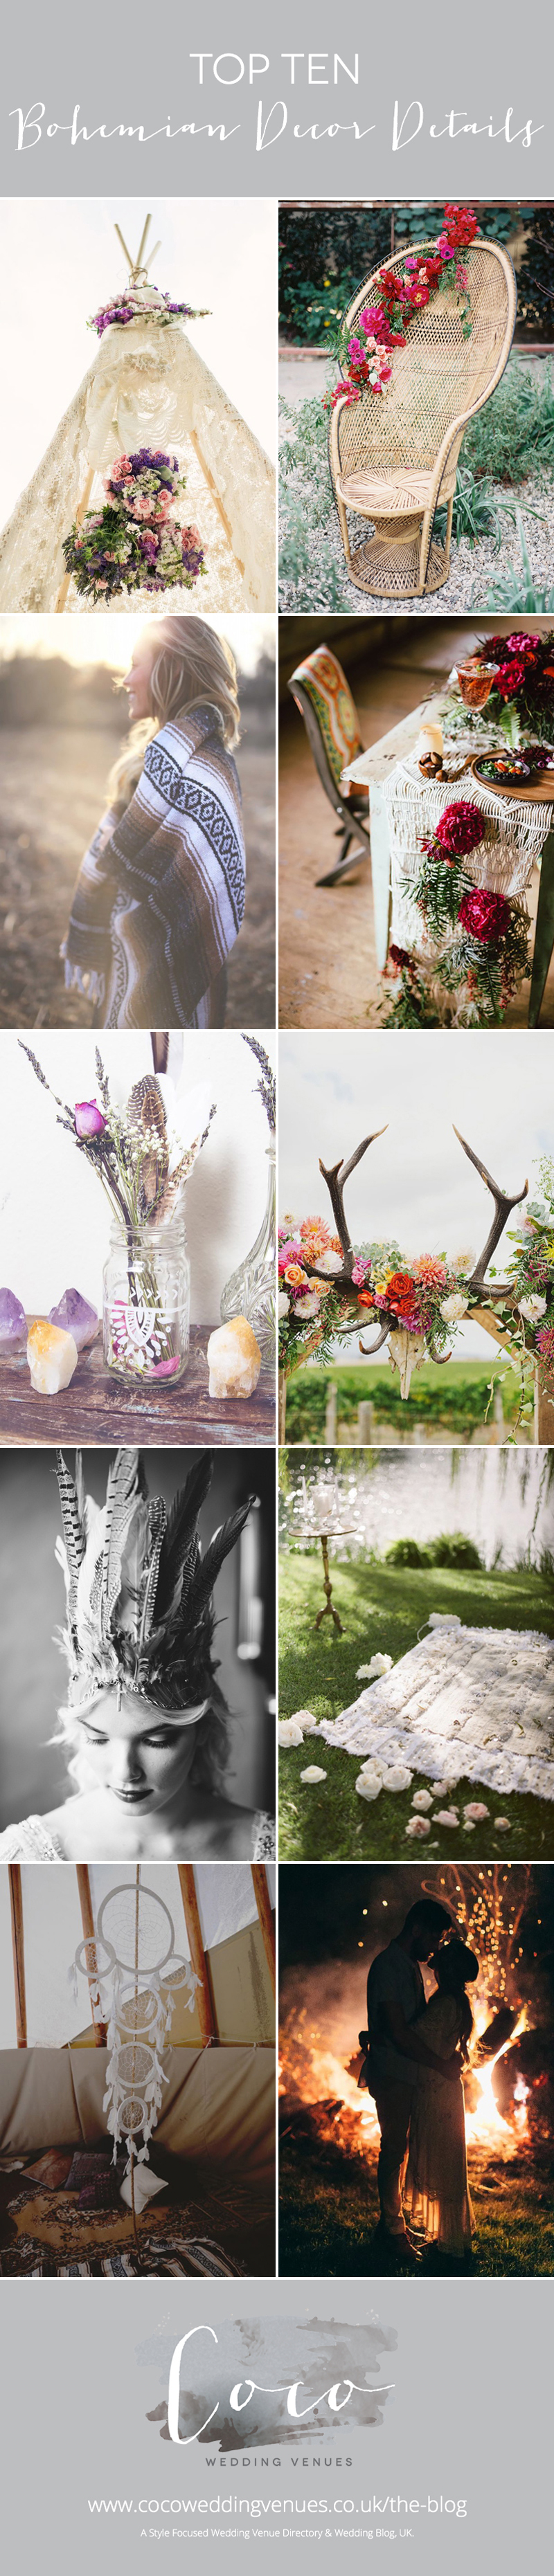 bohemia-wedding-decor-details-coco-wedding-venues-pin-it